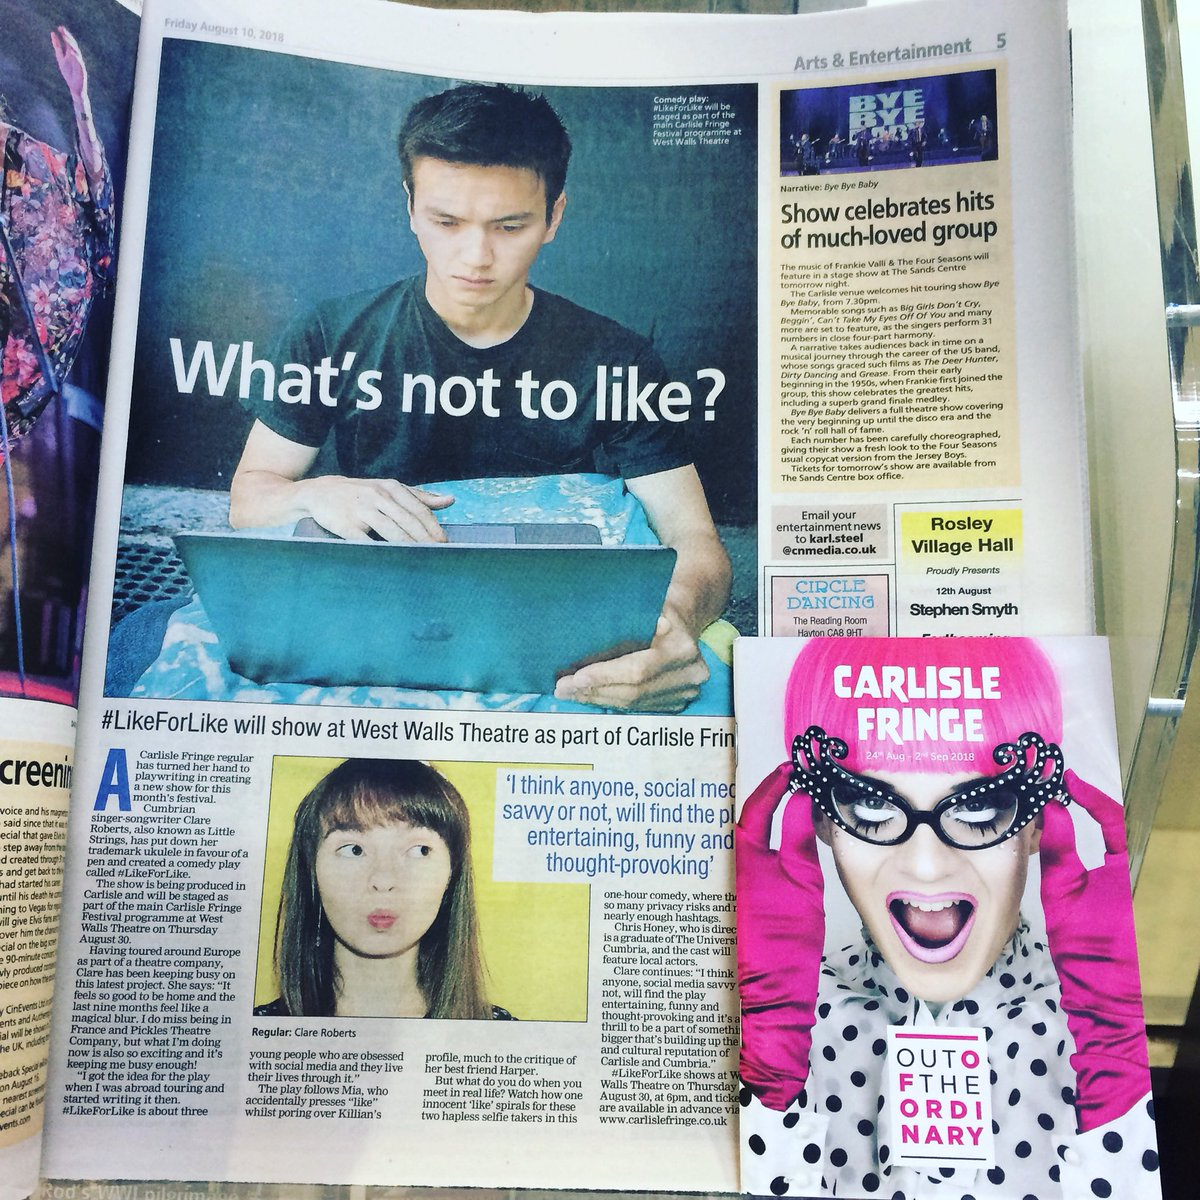 Have you bought your copy of this week's @newsandstar yet? There's a great article in it about our show #LikeForLike that is coming to @carlisle_fringe 30th August &amp; writer @LittleStringsC! Get your tickets at   http://www. carlislefringe.co.uk/portfolio/like forlike-30th-aug/ &nbsp; …  or at the Carlisle   #CarlisleFringe<br>http://pic.twitter.com/91sGxI4GZr